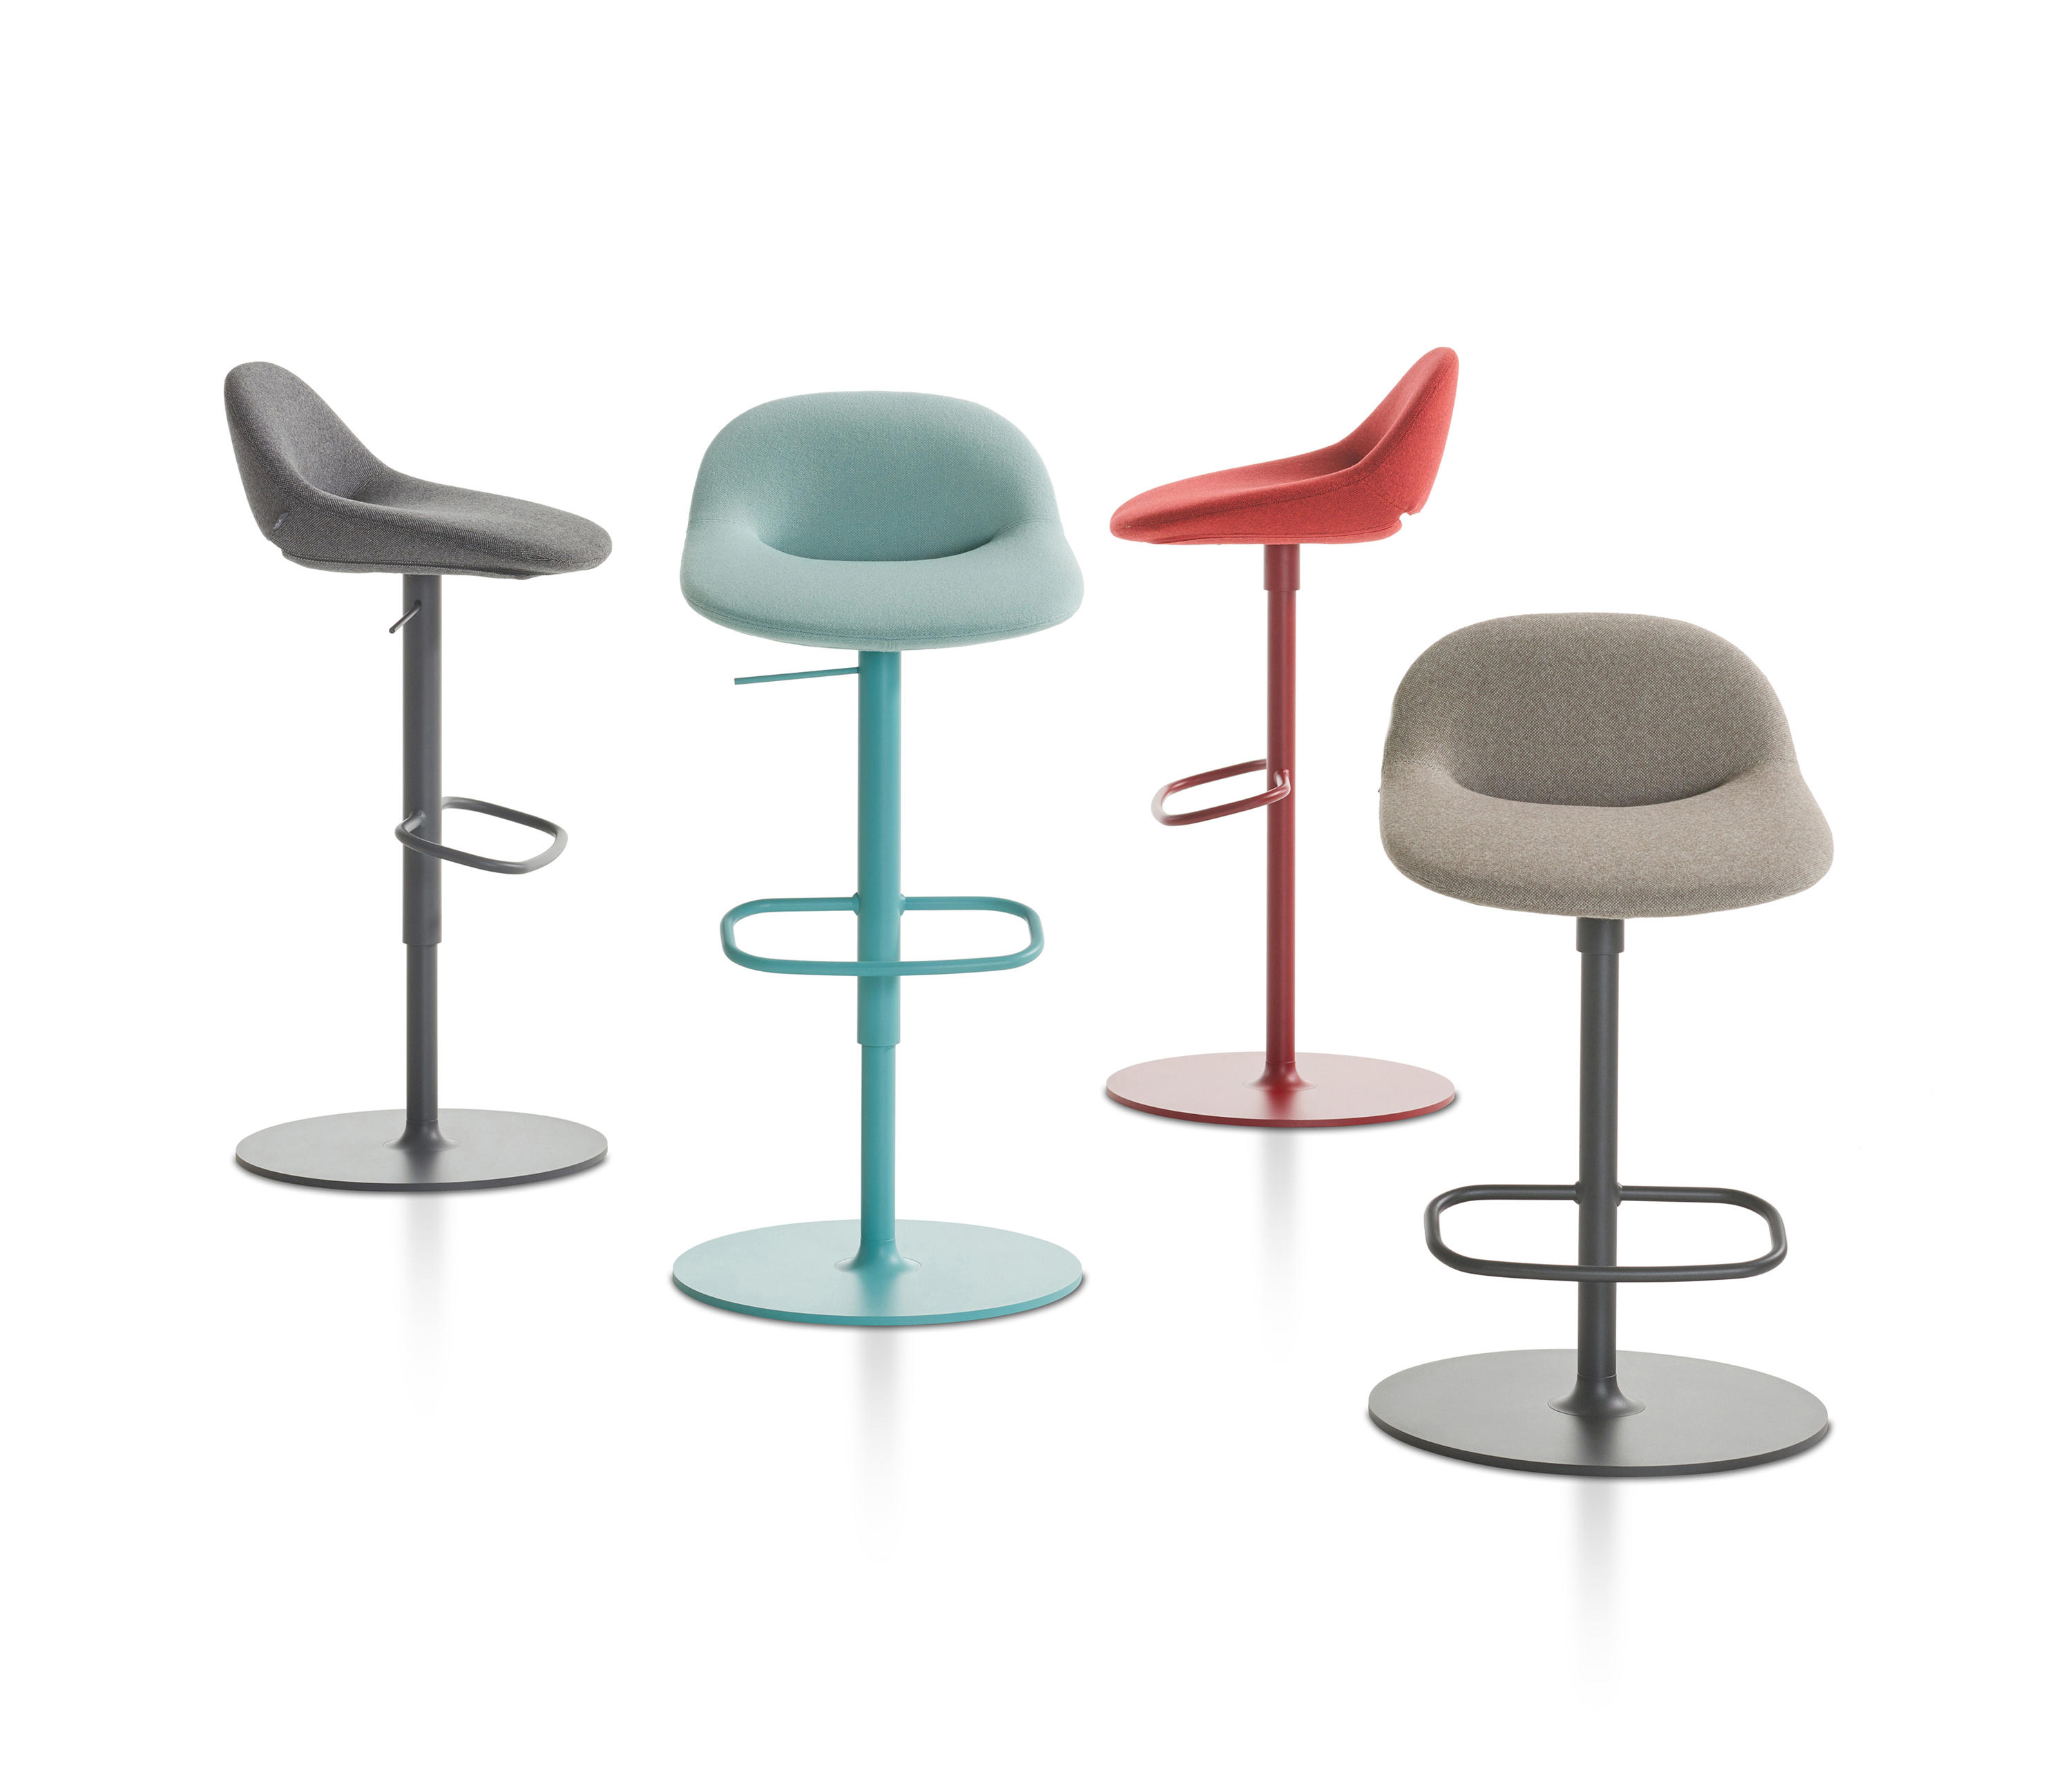 Tremendous Beso Chairs From Artifort Architonic Gamerscity Chair Design For Home Gamerscityorg